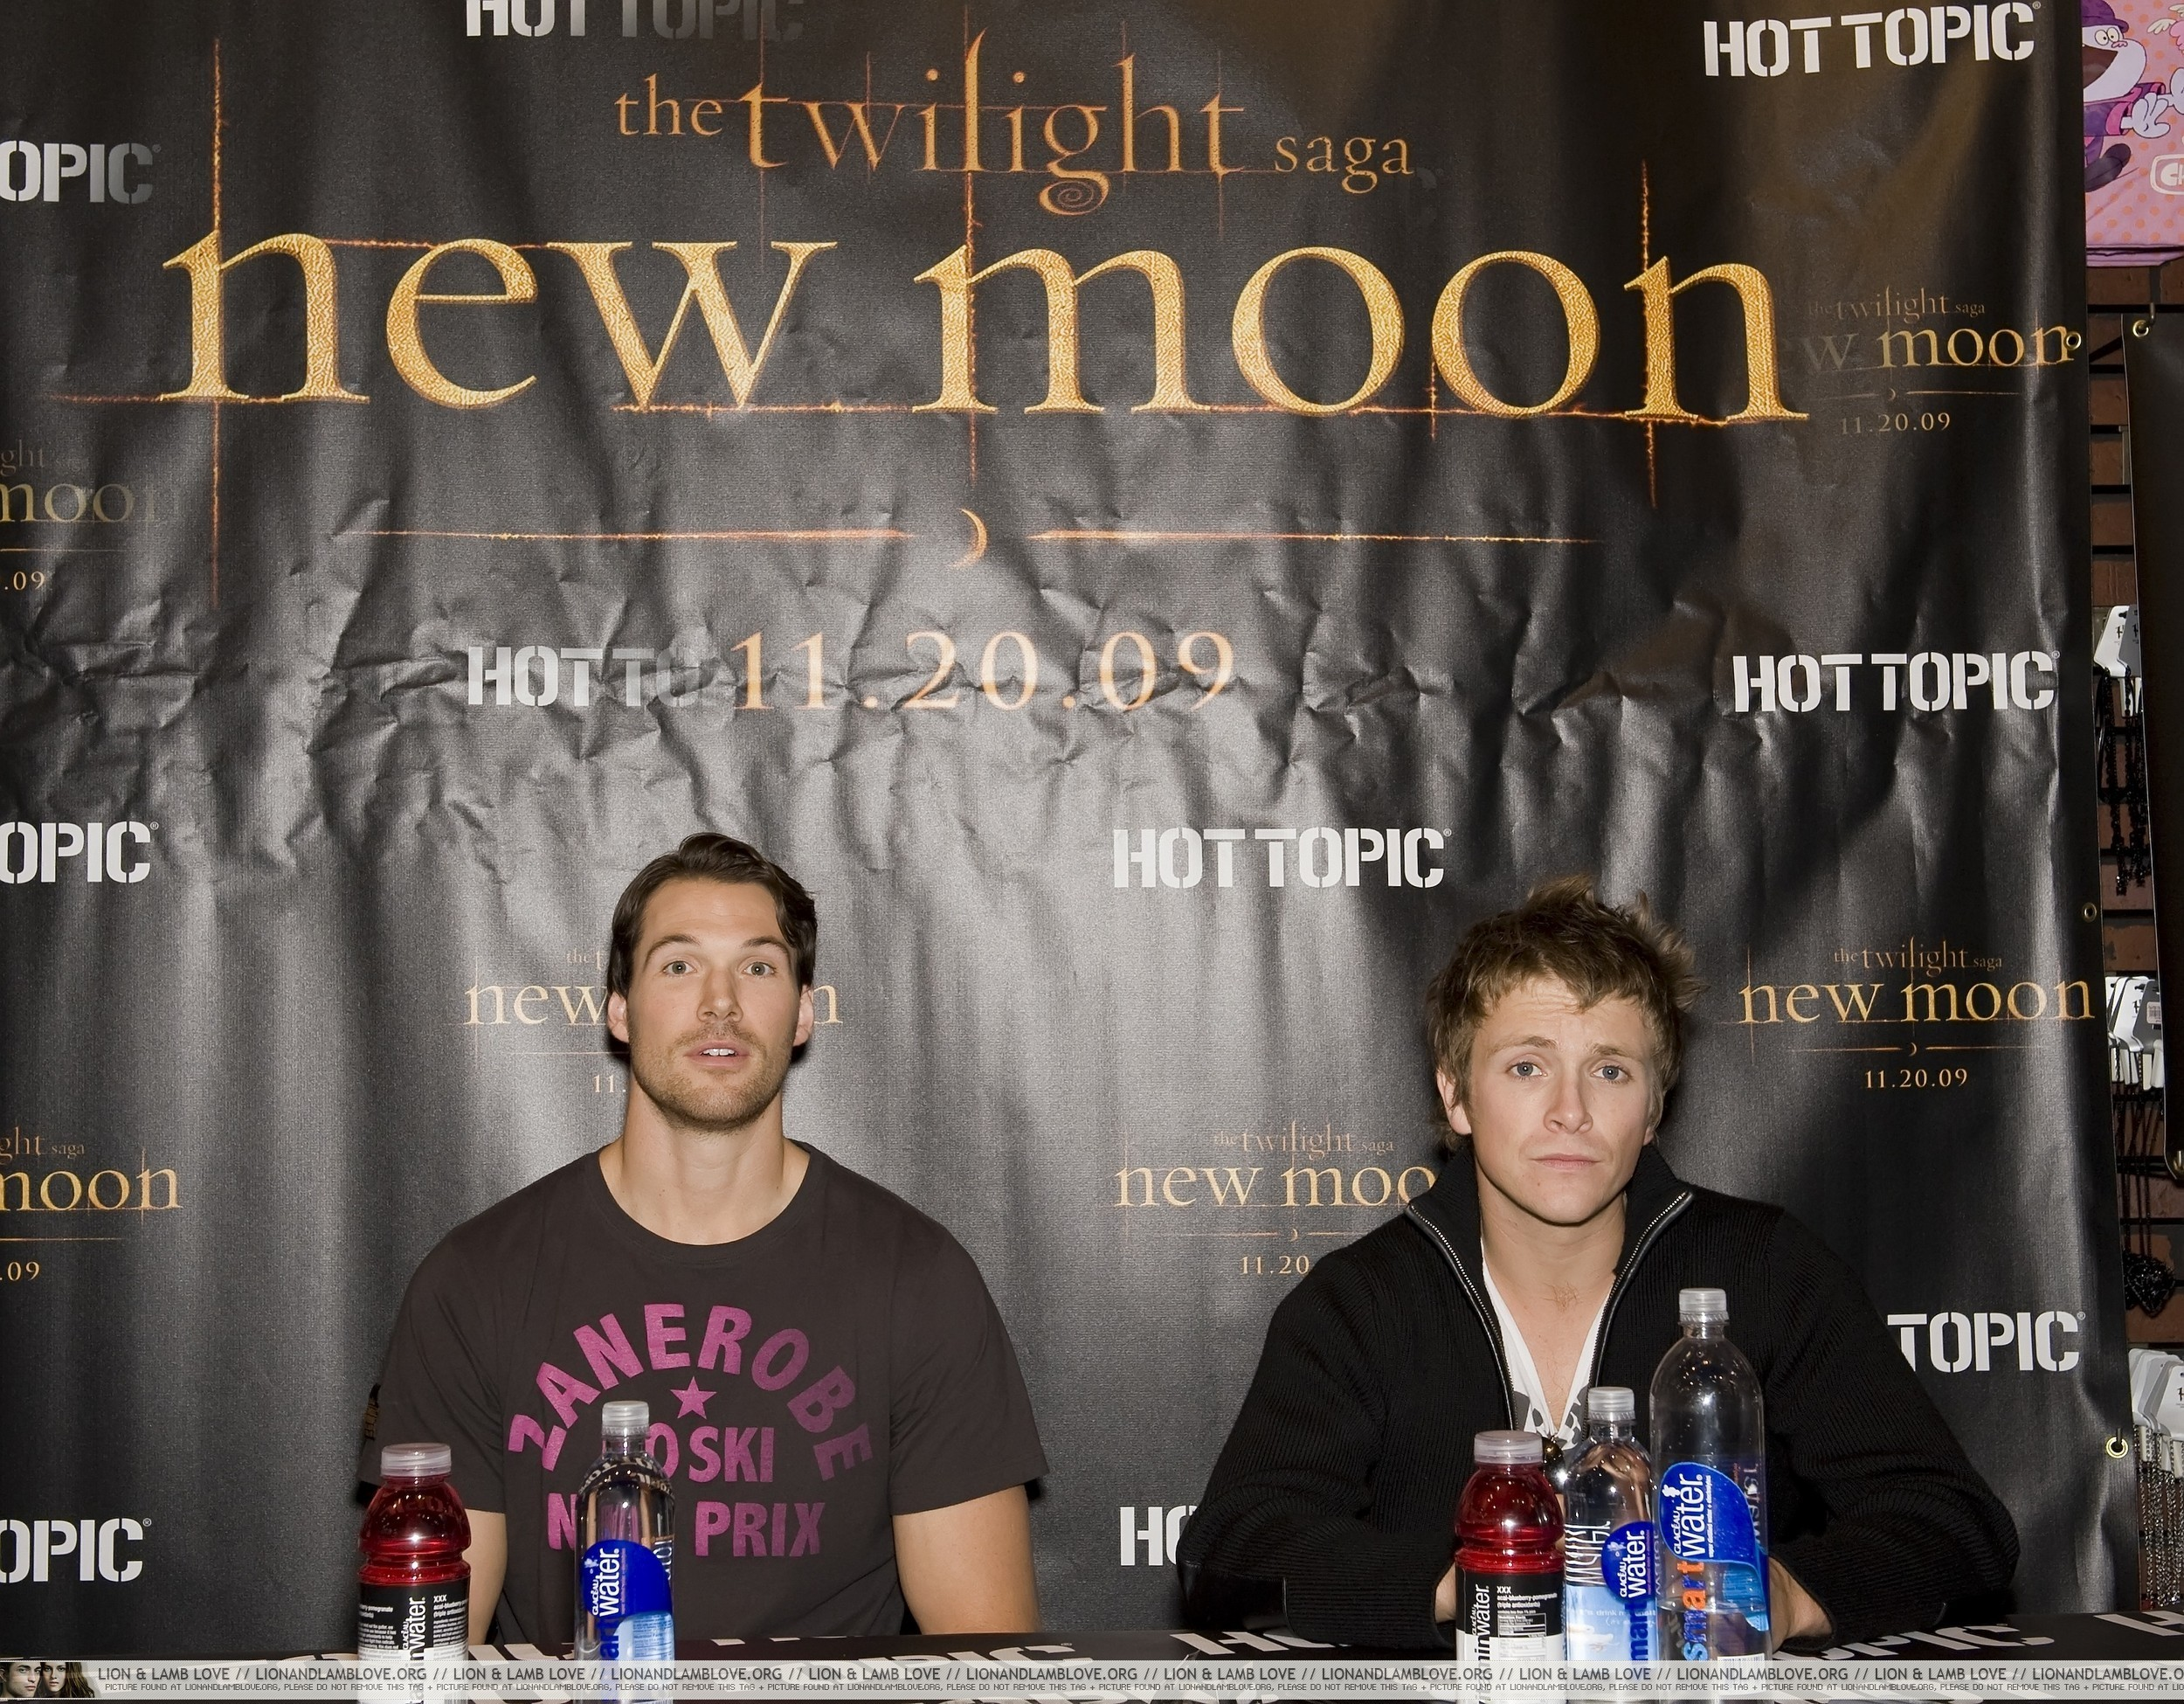 http://images2.fanpop.com/image/photos/9000000/Daniel-and-Charlie-in-New-Jersey-10-November-twilight-series-9012640-2500-1950.jpg